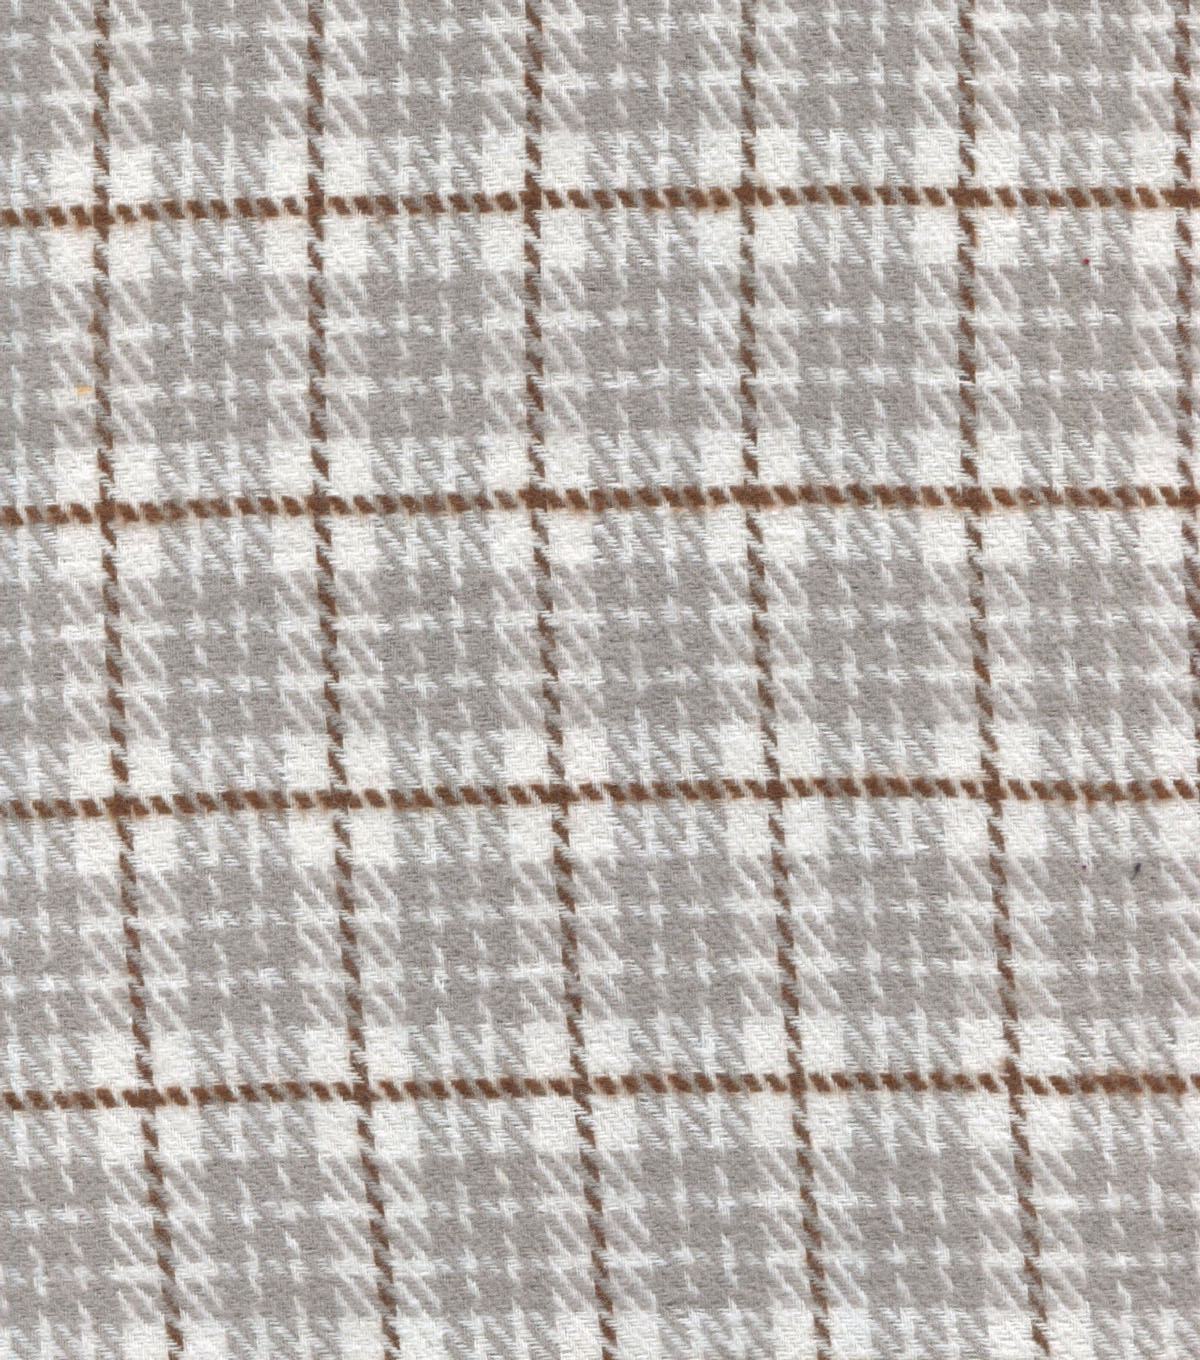 Plaid Brush Cotton-Cream Brown Gray